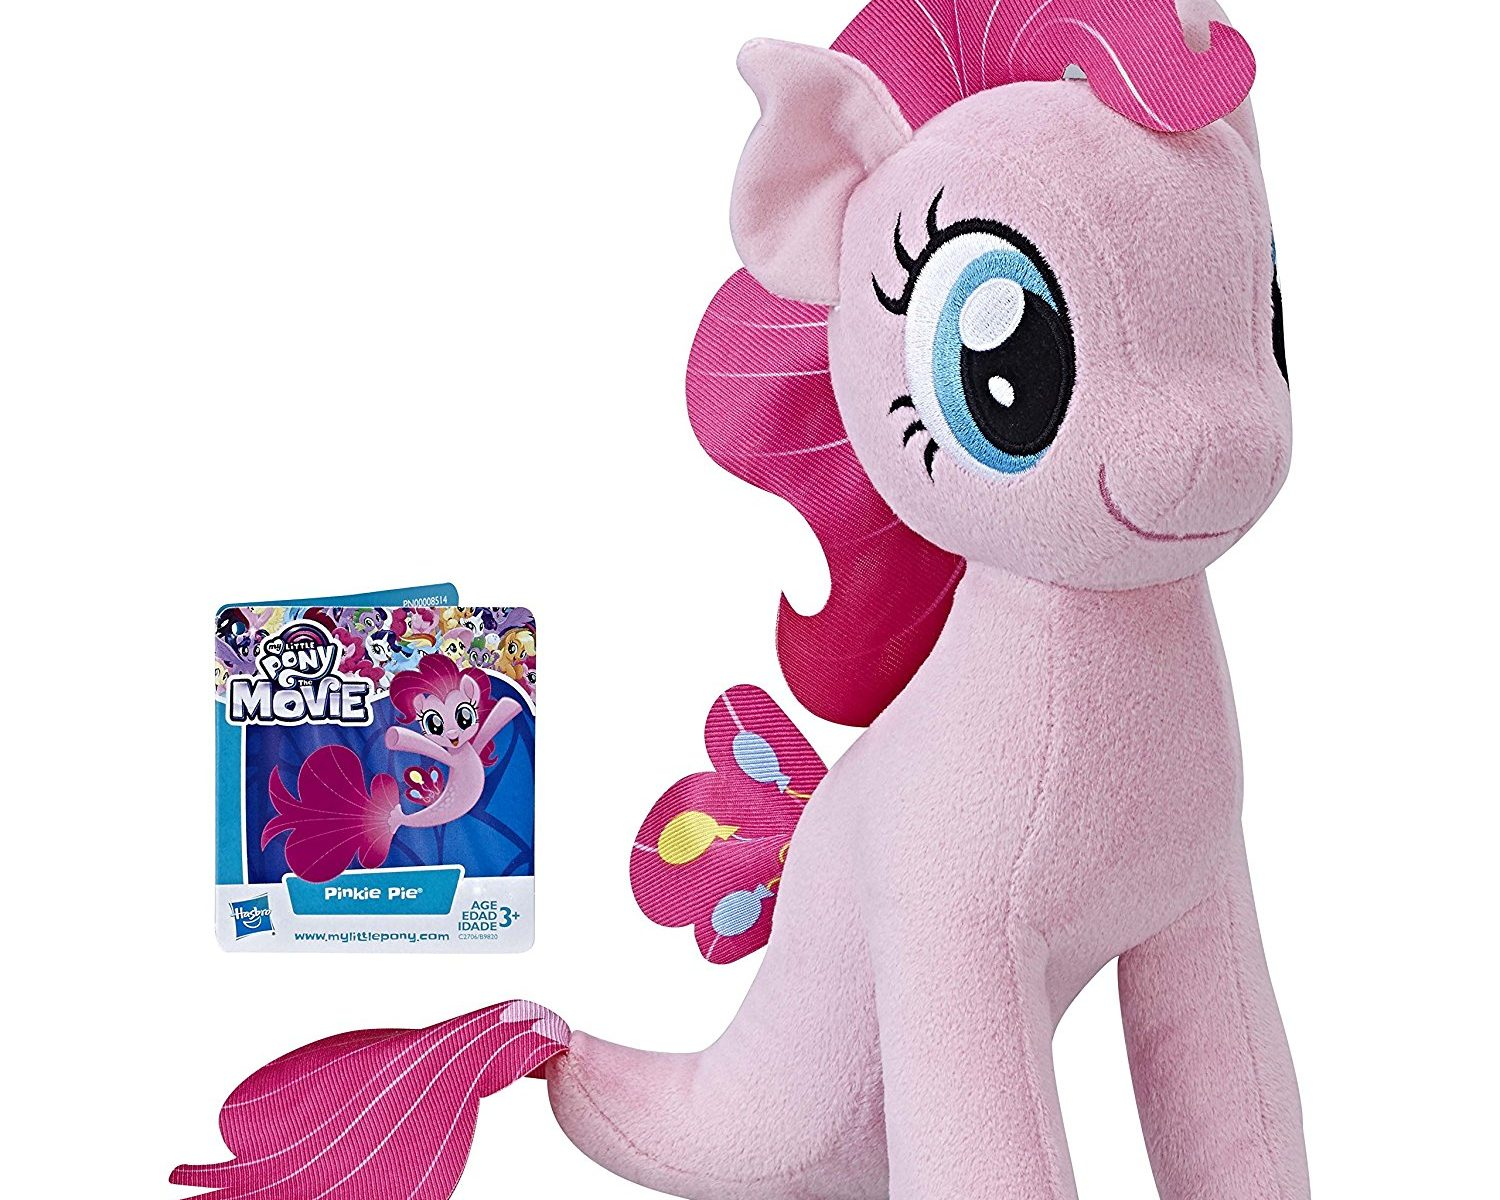 MLP: TM Pinkie Pie Sea-Pony Plush Toy